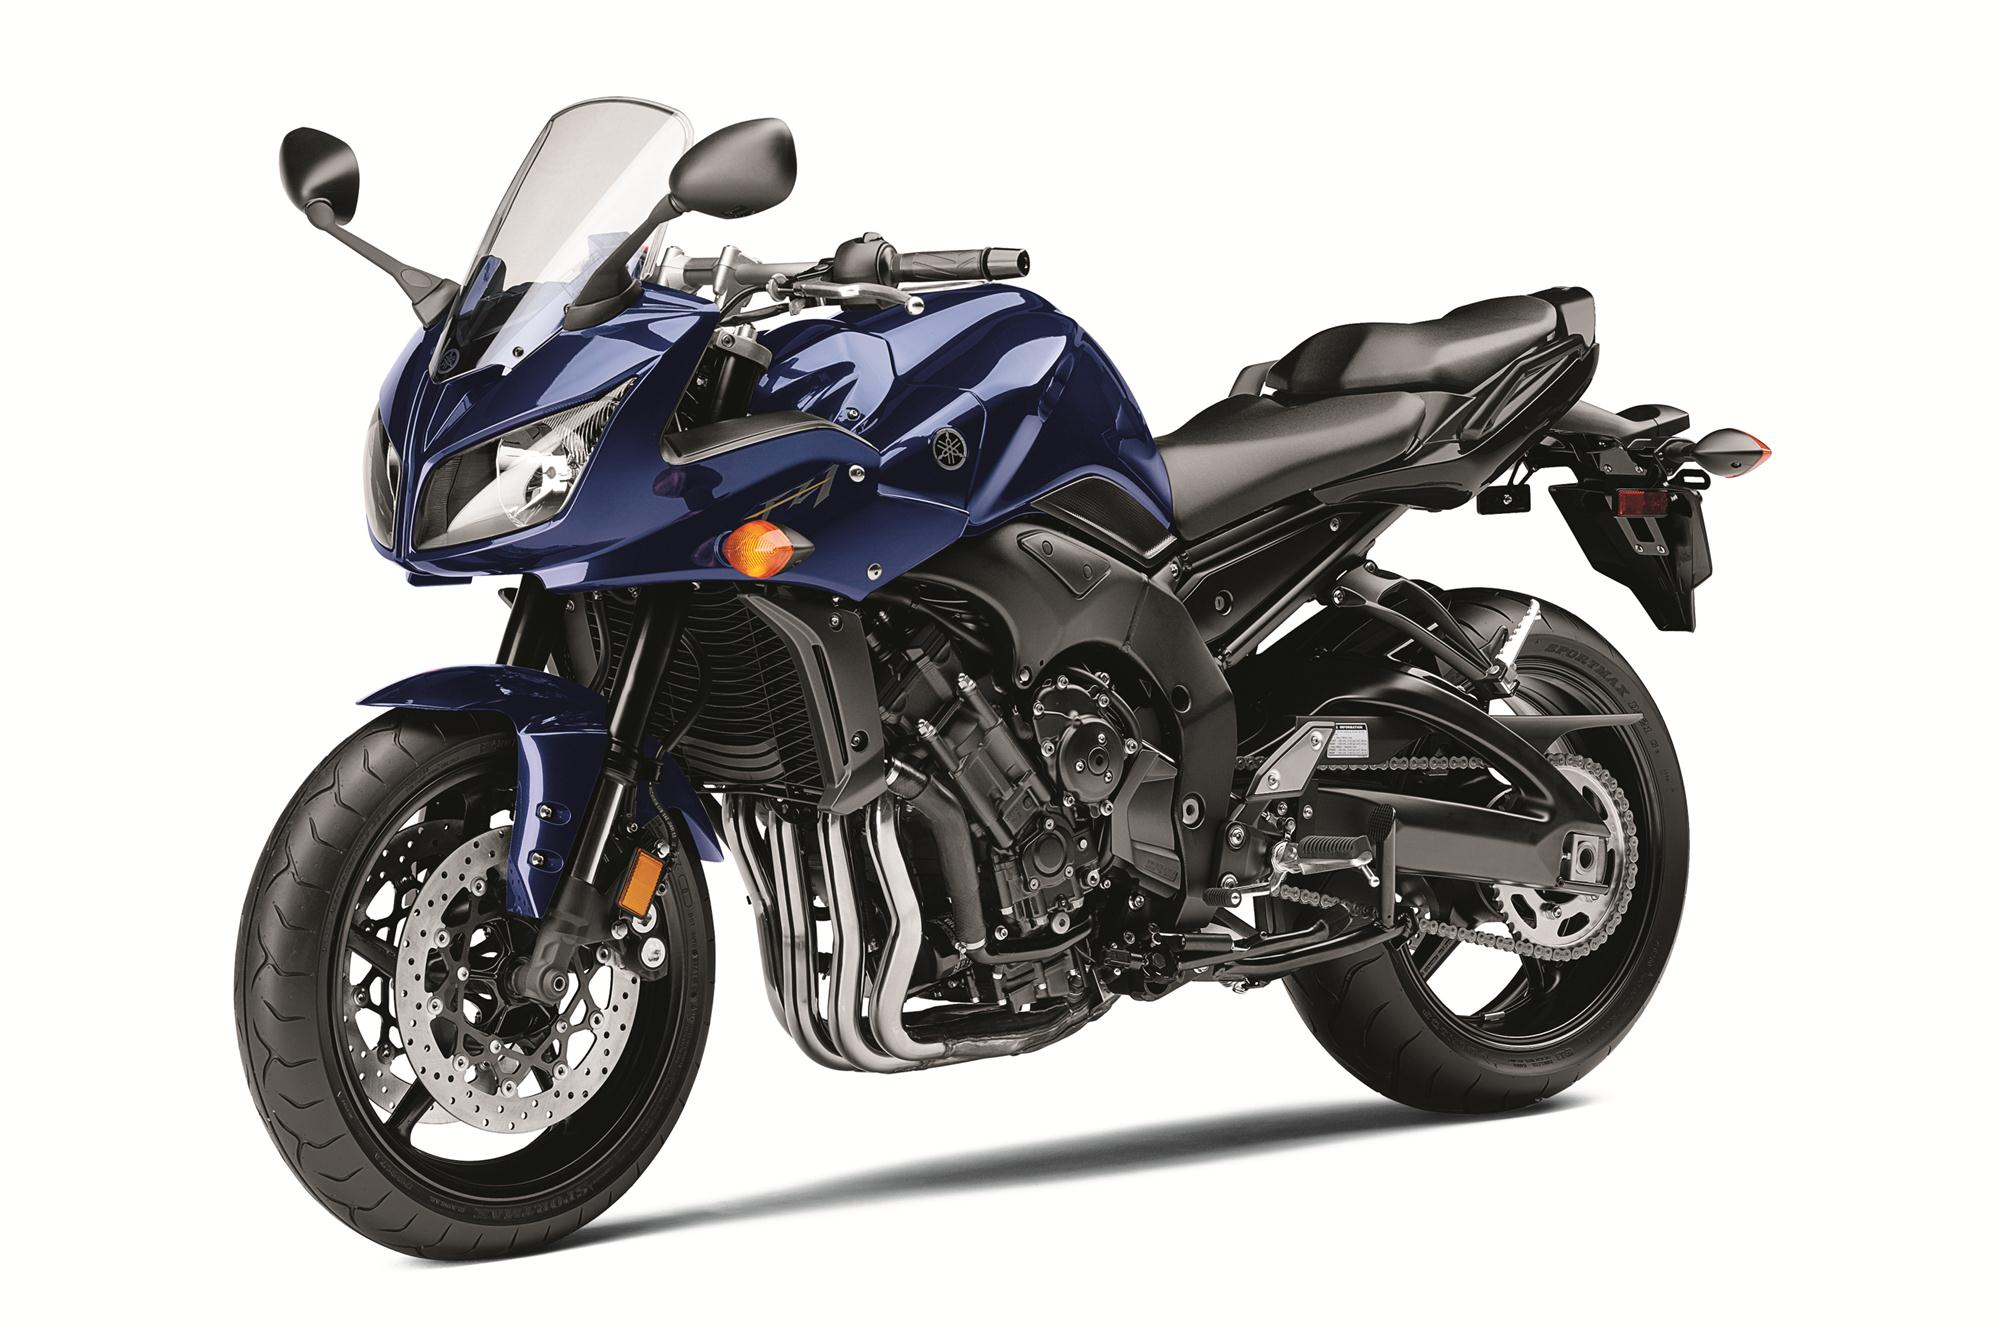 Yamaha YZF-R1M Has Sold Out in Europe - Asphalt & Rubber